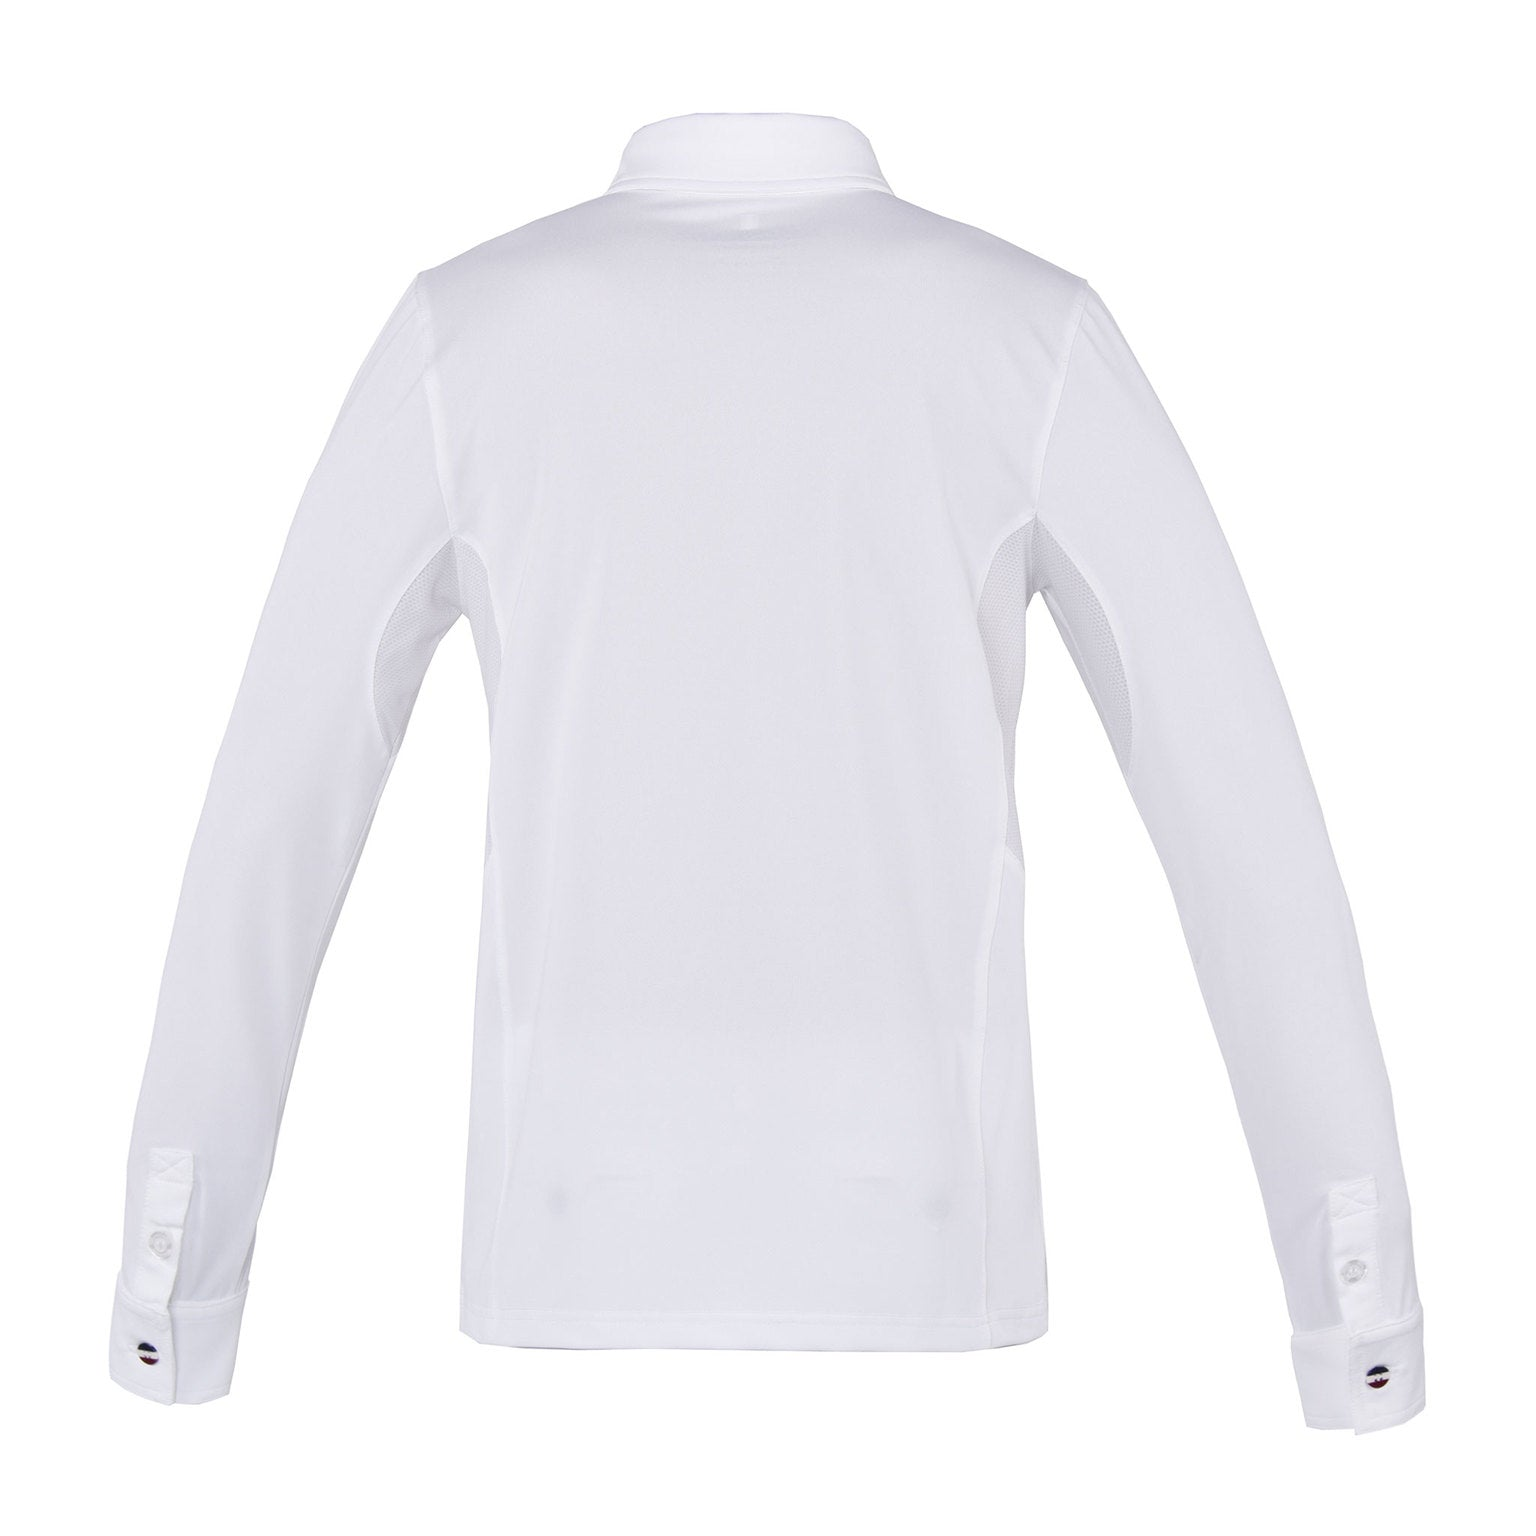 Kingsland Classic Men's Long Sleeve Show Shirt